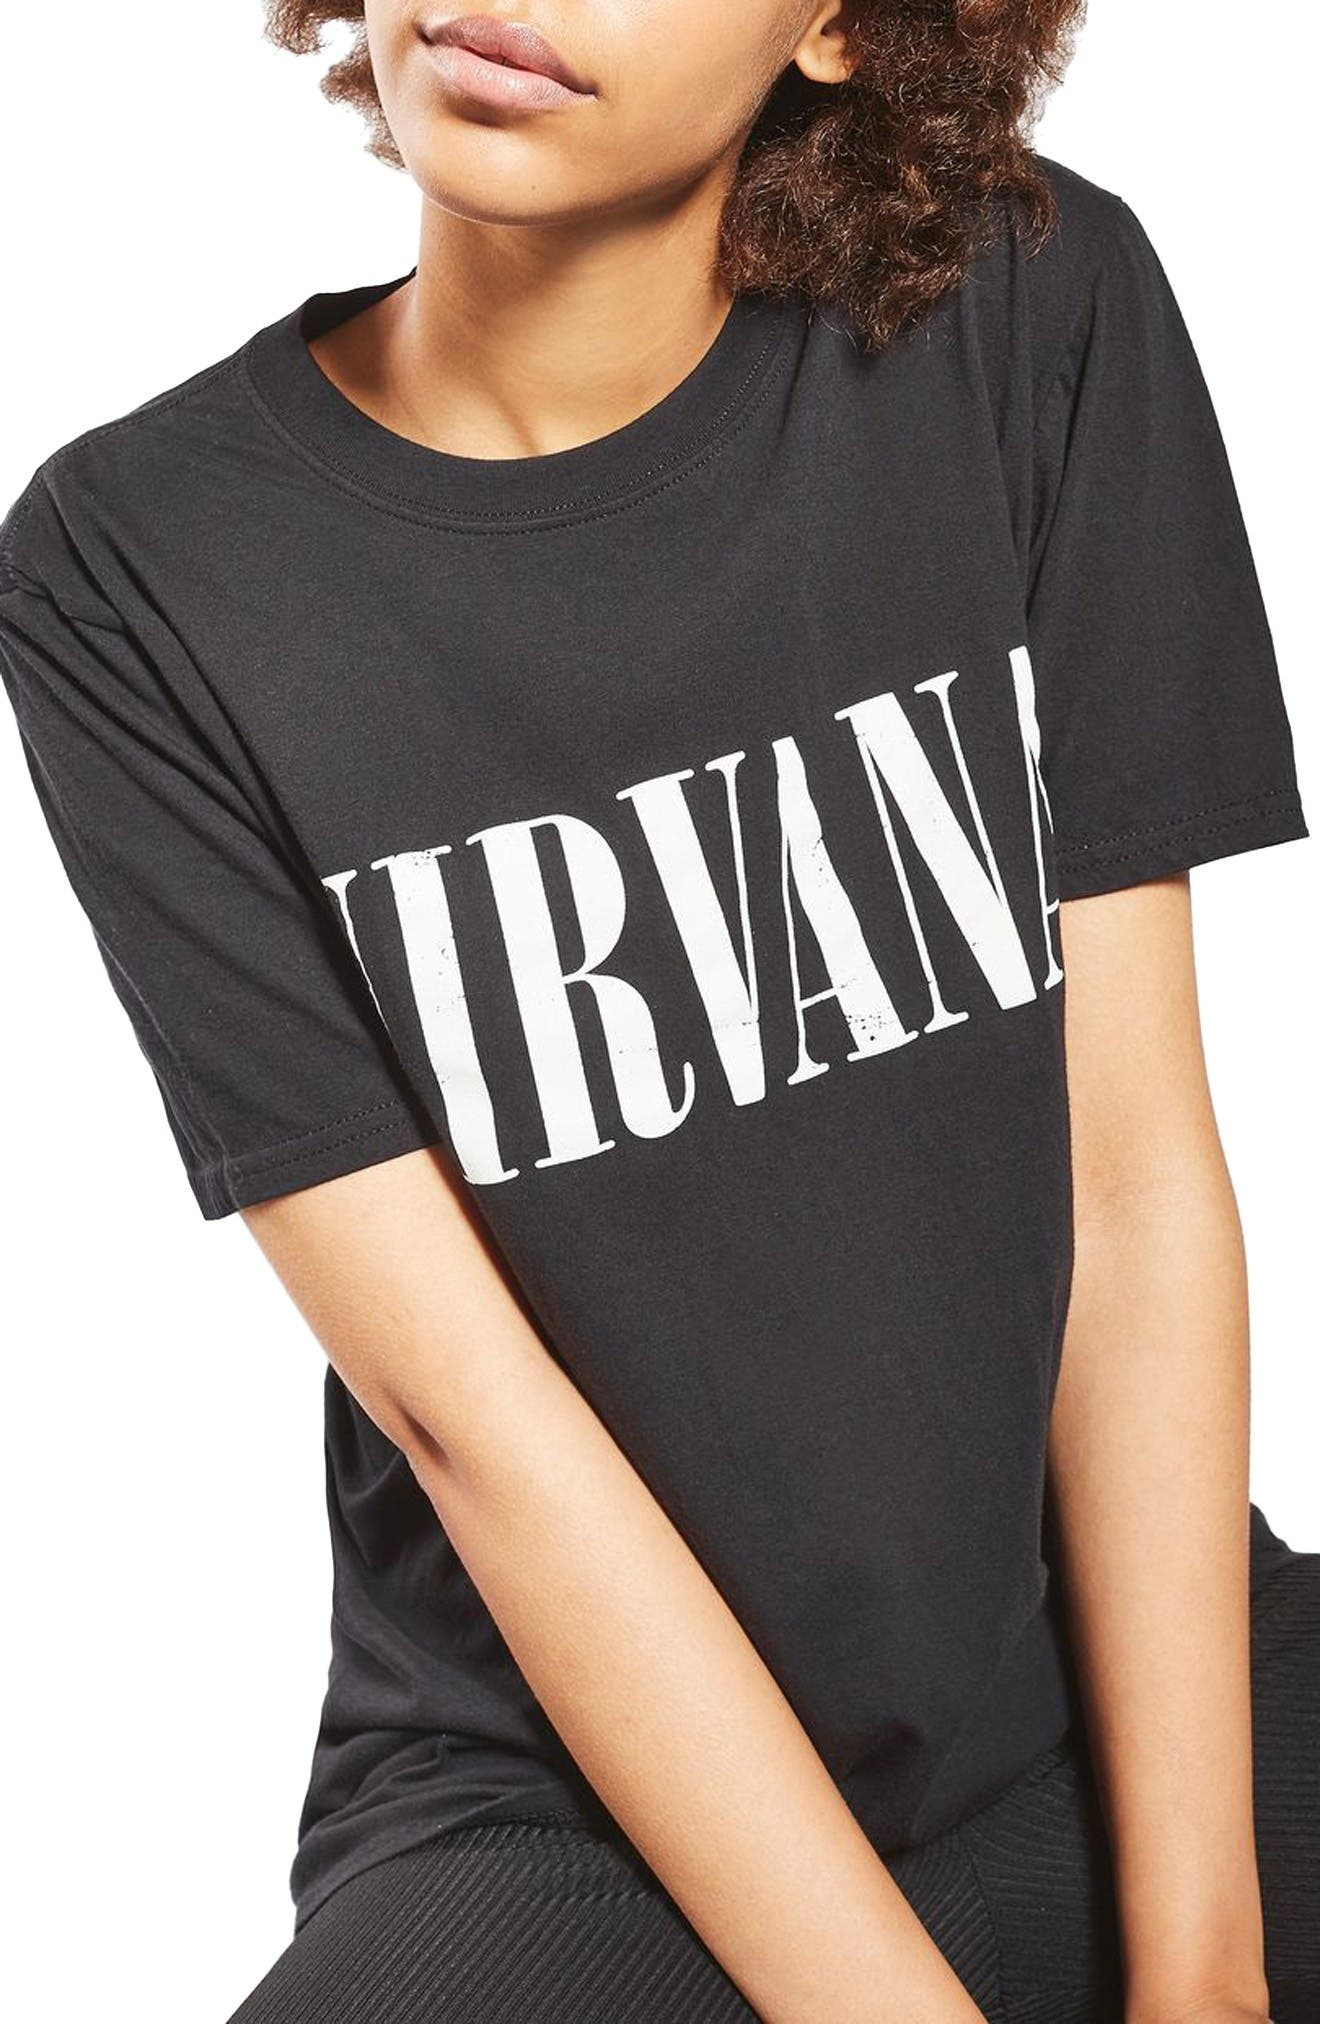 Topshop by And Finally Nirvana Nibbled Tee (Regular & Petite)